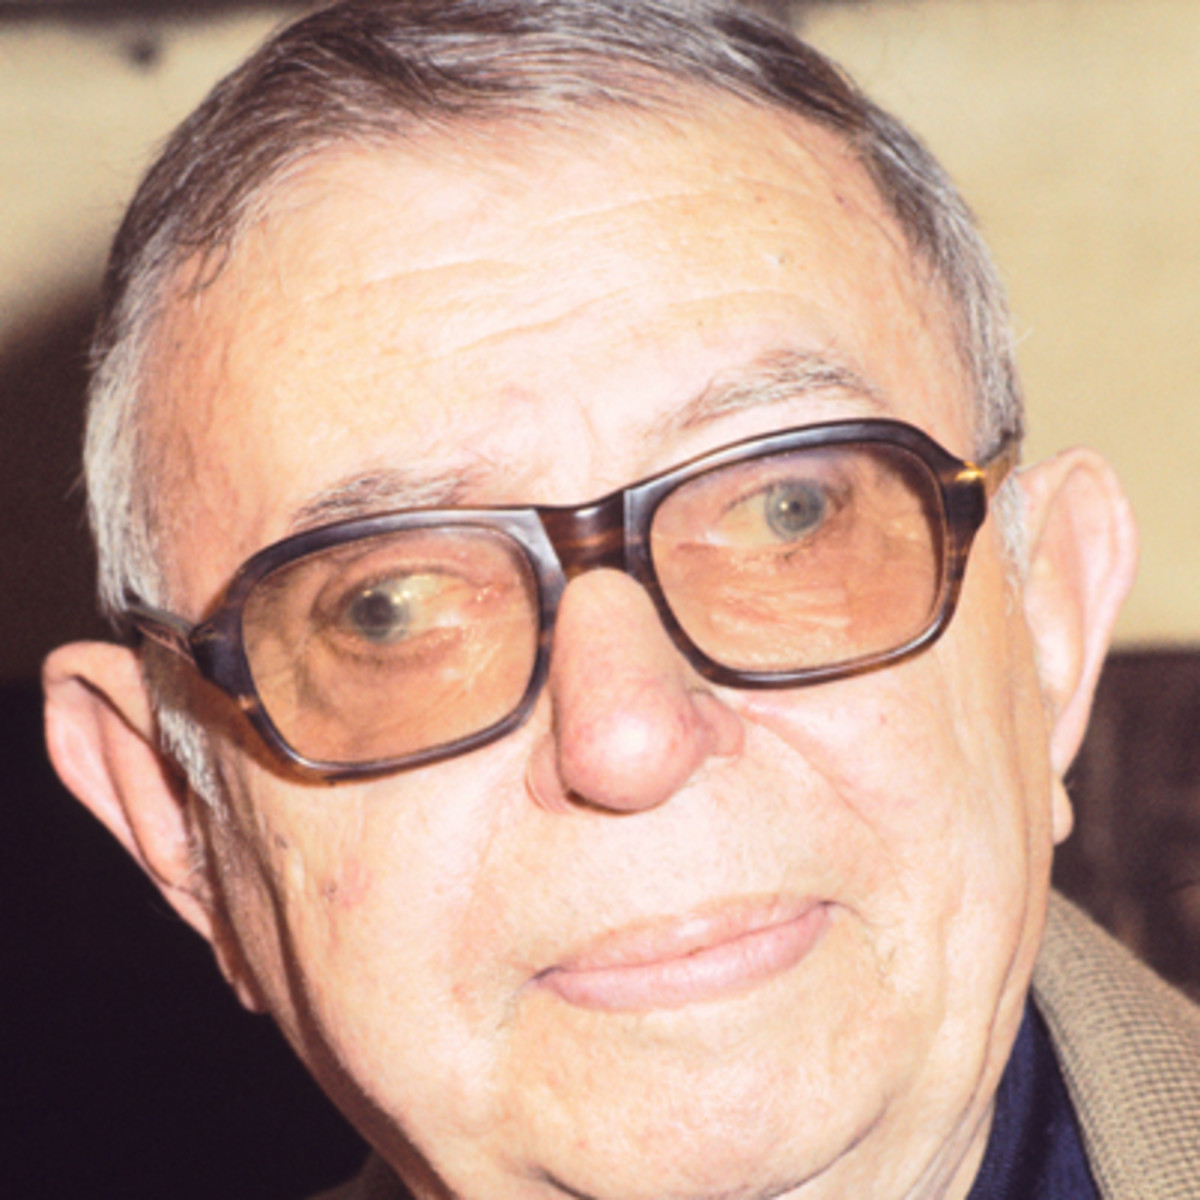 jean paul sartre academic philosopher author screenwriter jean paul sartre academic philosopher author screenwriter journalist activist literary critic playwright com